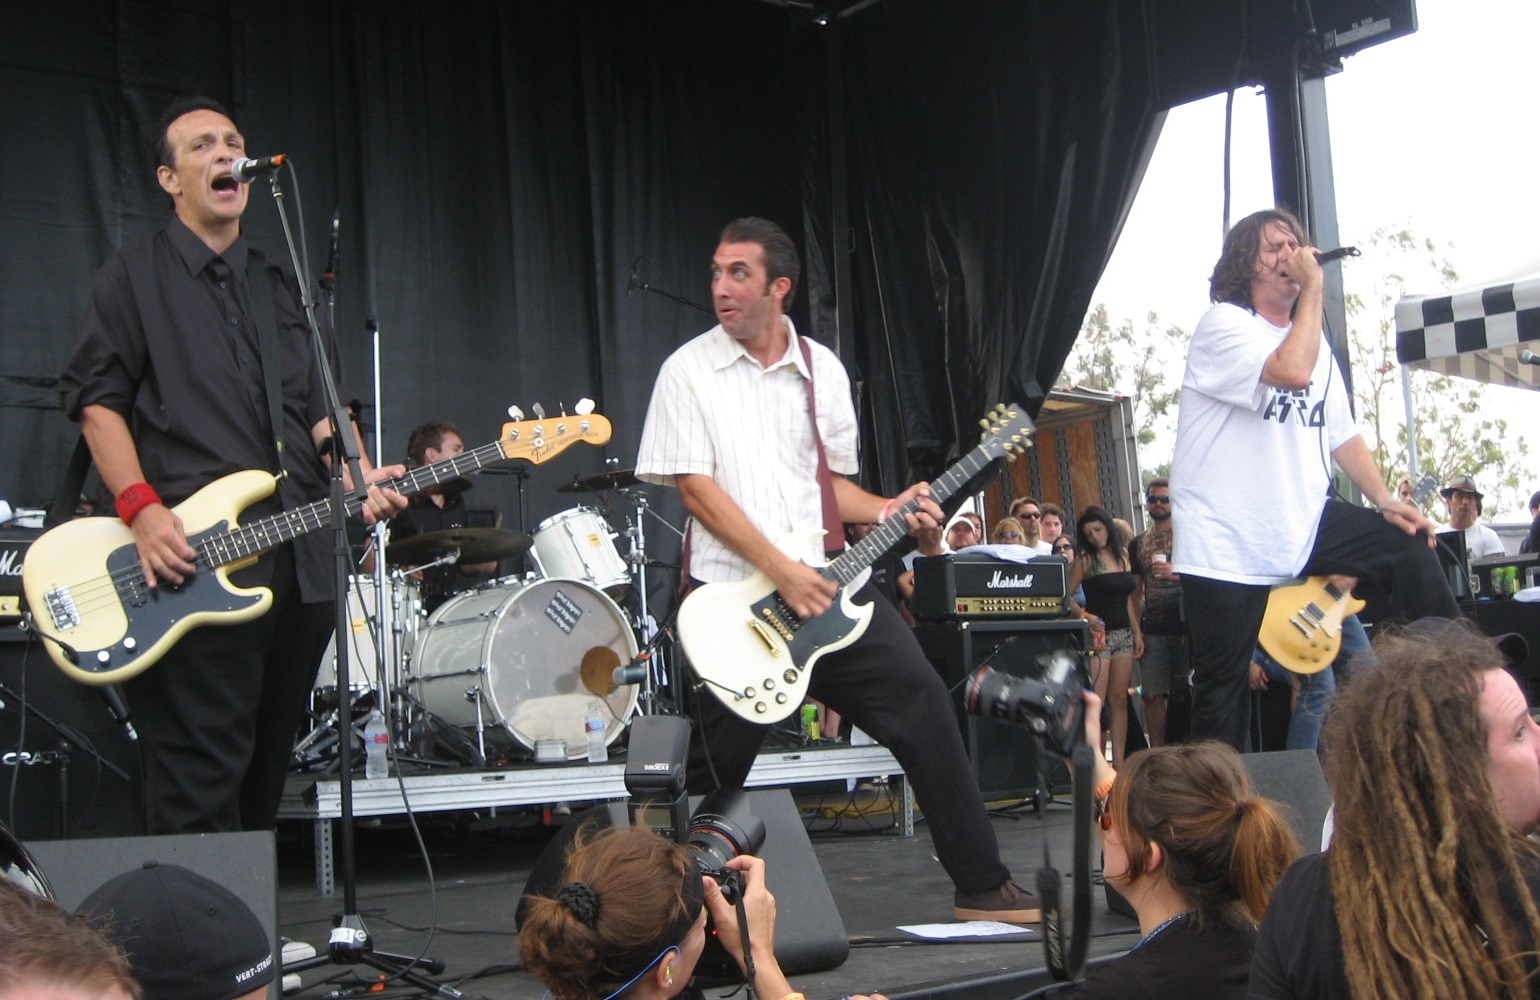 The_Adolescents_Warped_Tour_2007.JPG